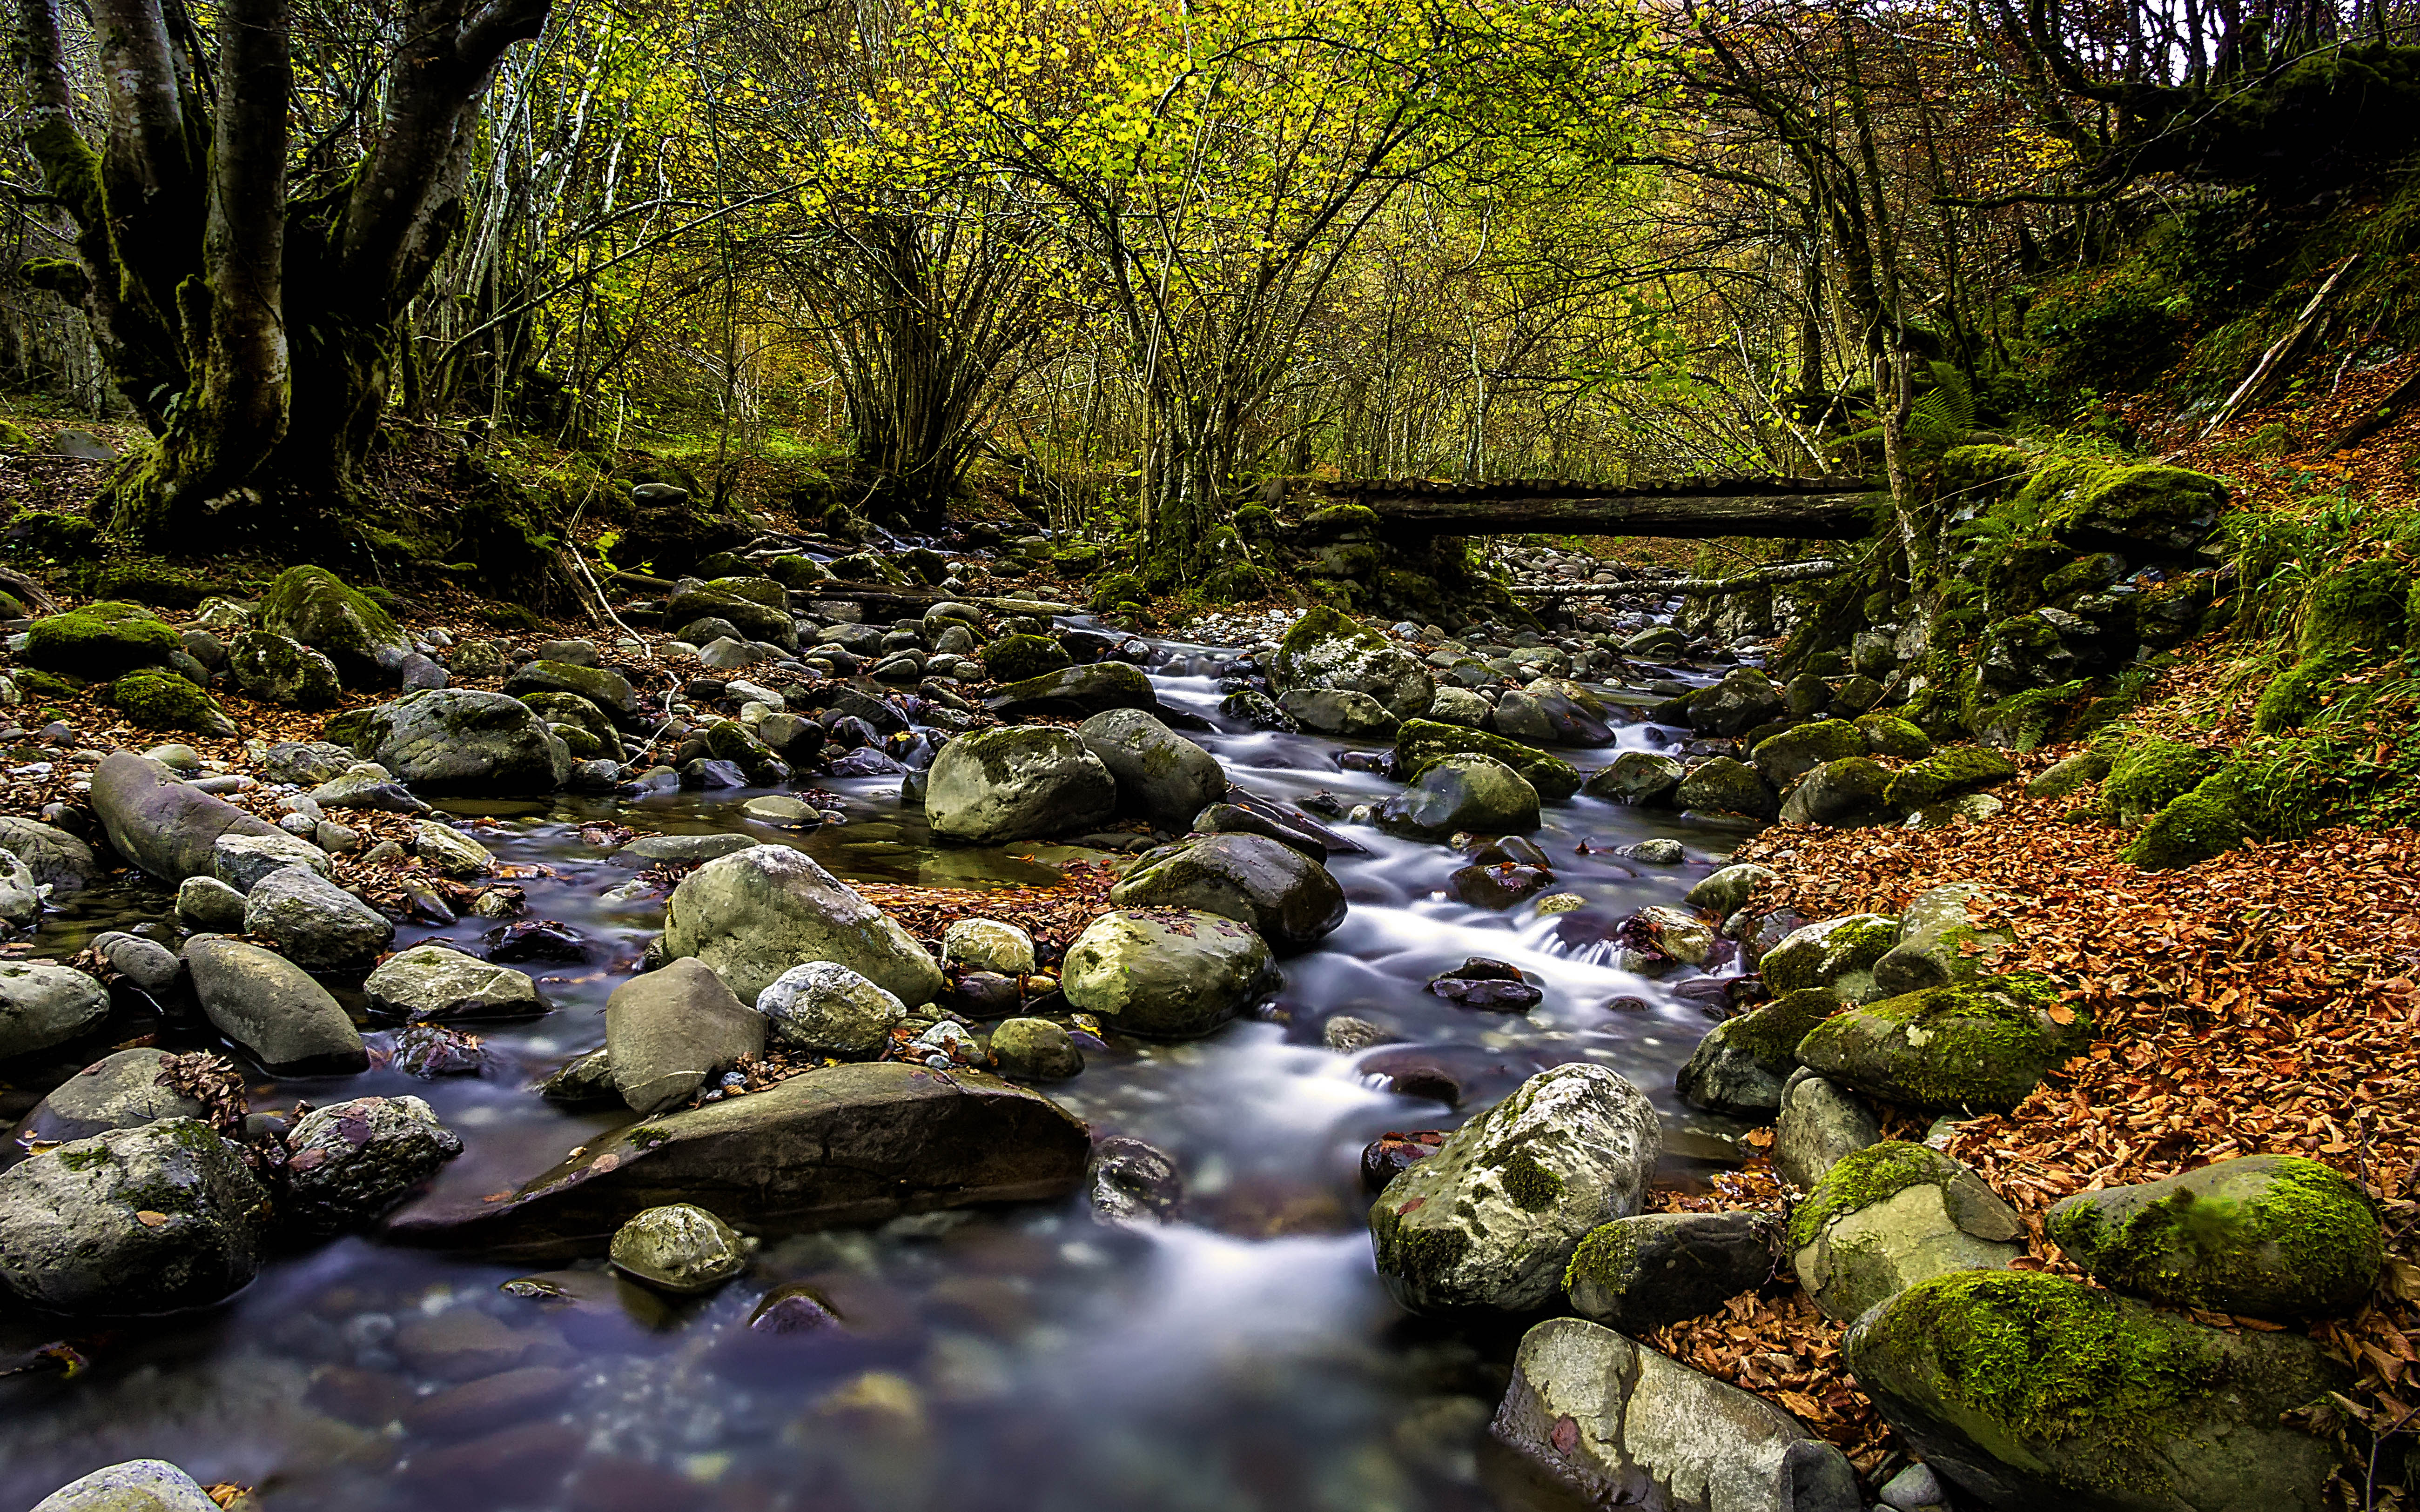 Nature Wallpaper Autumn Fall 1600x1200 Clear Forest Stream Stones With Green Moss Red Leaves